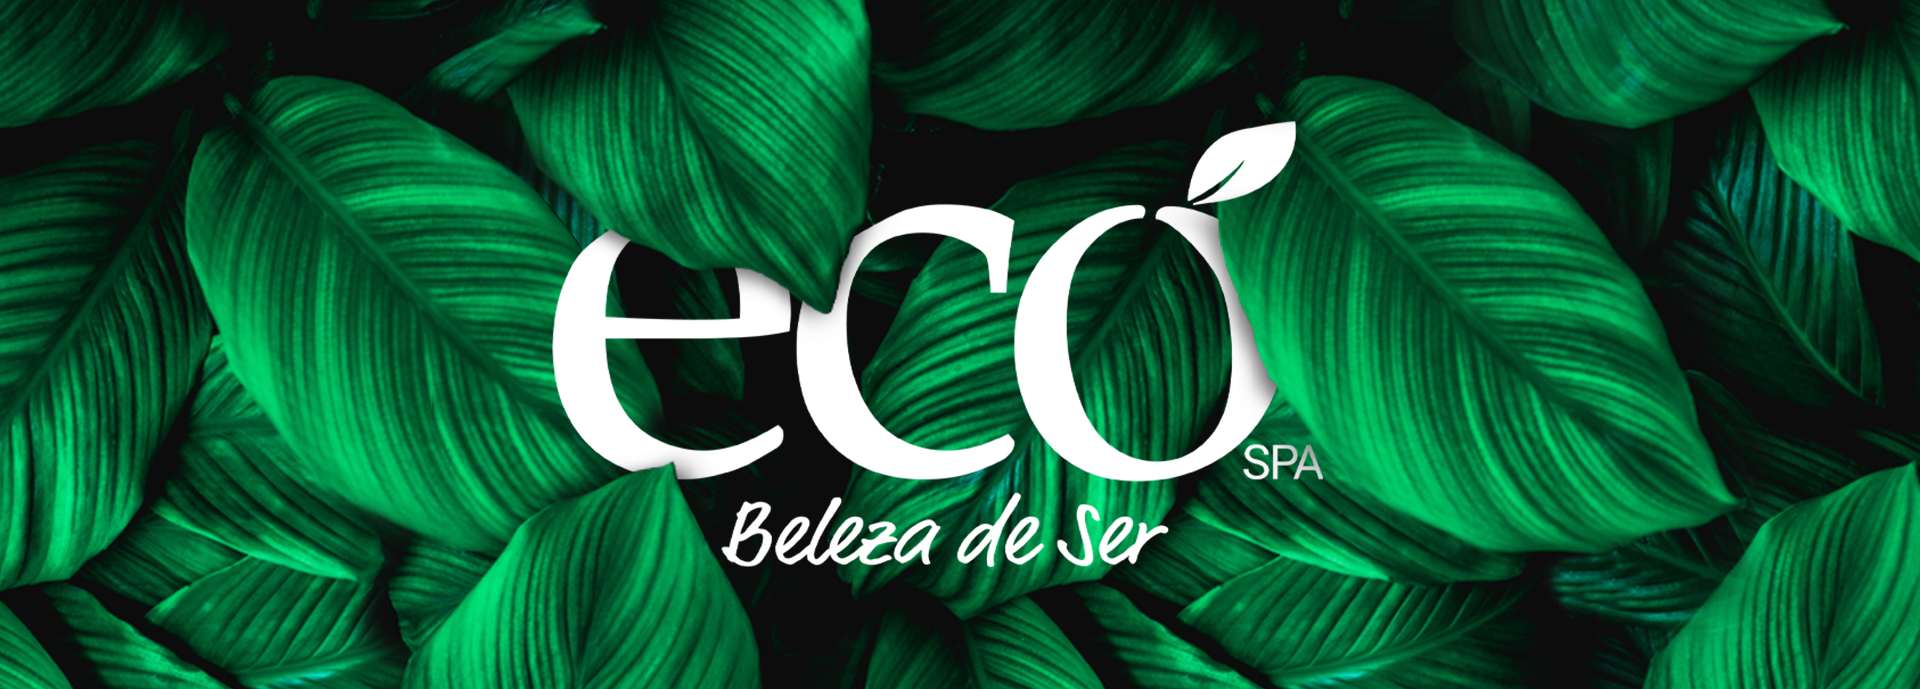 BANNER-SITE-ECO